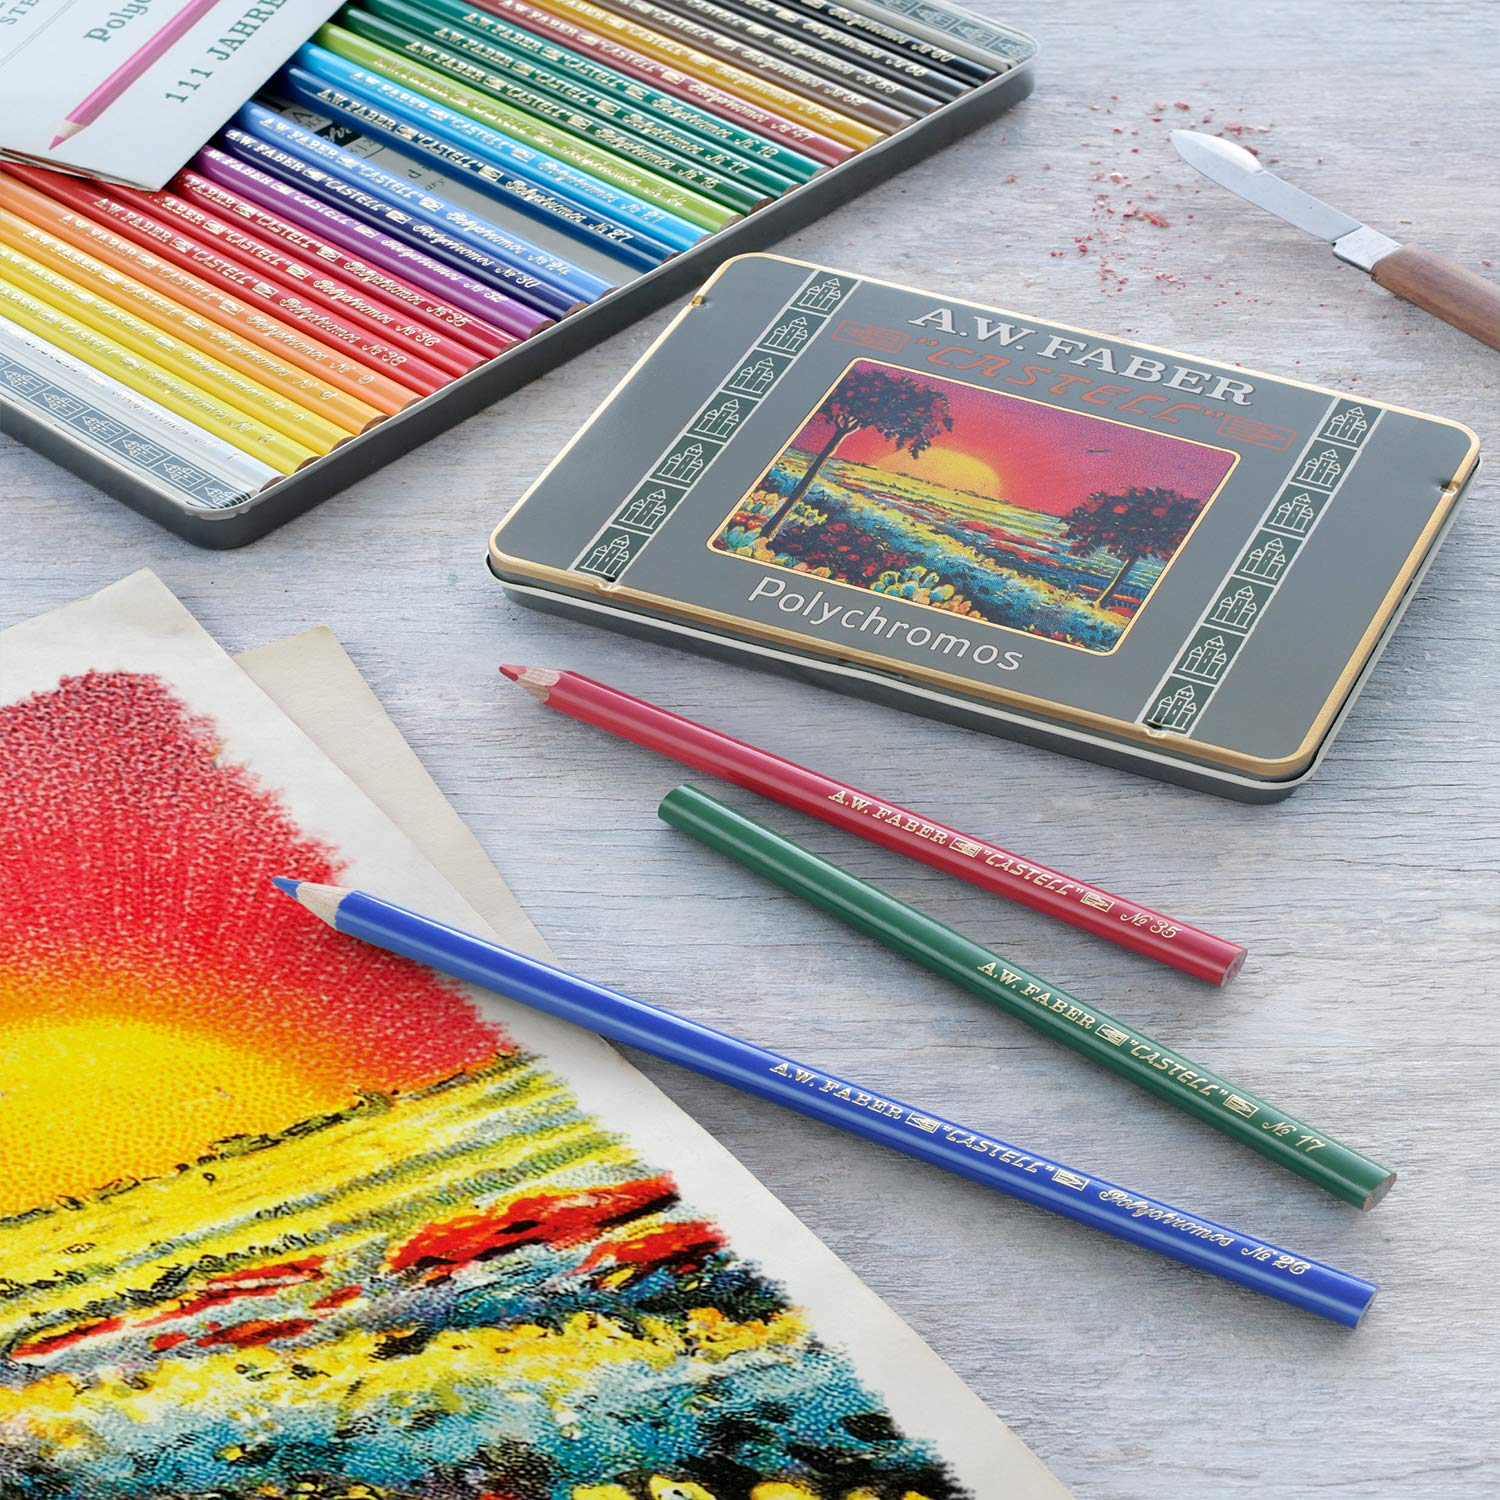 Faber-Castell Polychromos 111th Anniversary Limited Edition Wood Colored Pencil Tin - 12 Colors by Faber-Castell (Image #7)